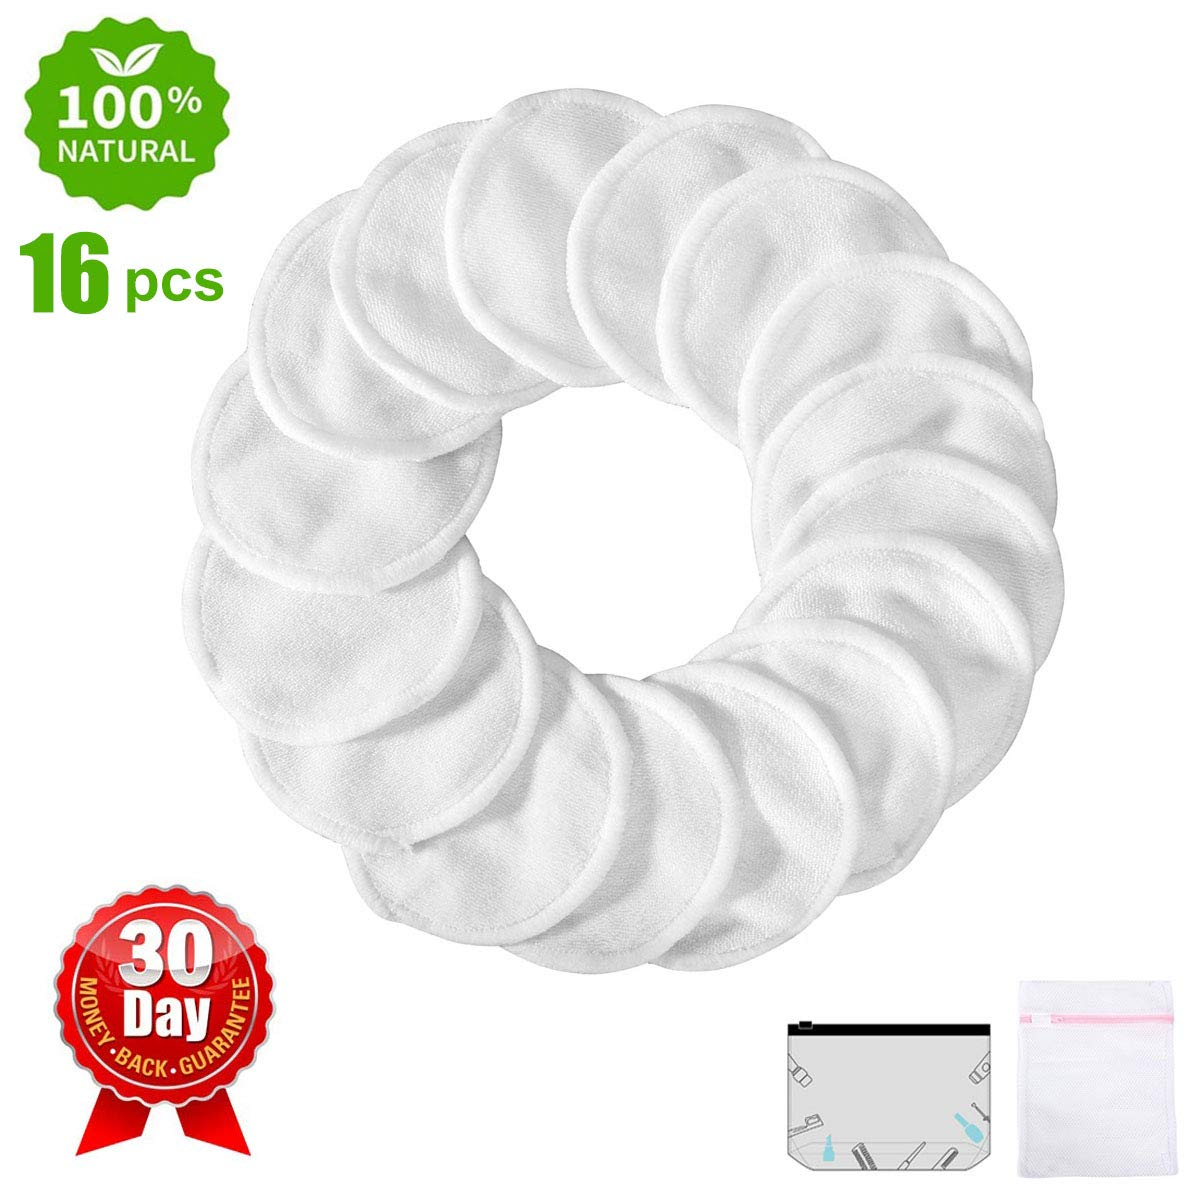 Reusable Makeup Remover Pads 16 Packs Organic Bamboo Cotton Rounds Facial Toner Pads,Washable Soft Cleansing Towel Wipes with Laundry Bag